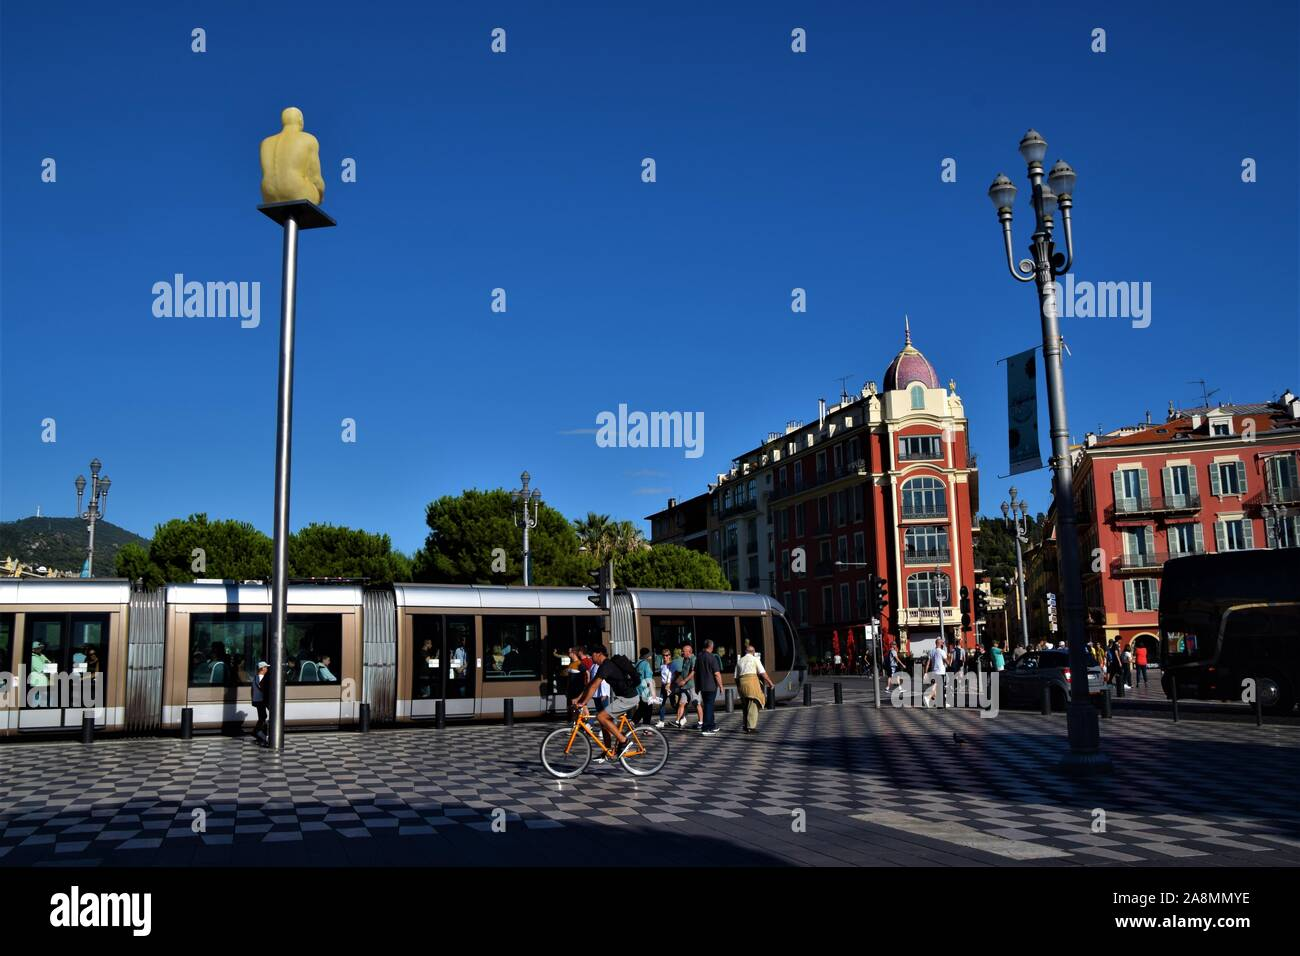 Place Massena Nice France with tram and people daytime Stock Photo